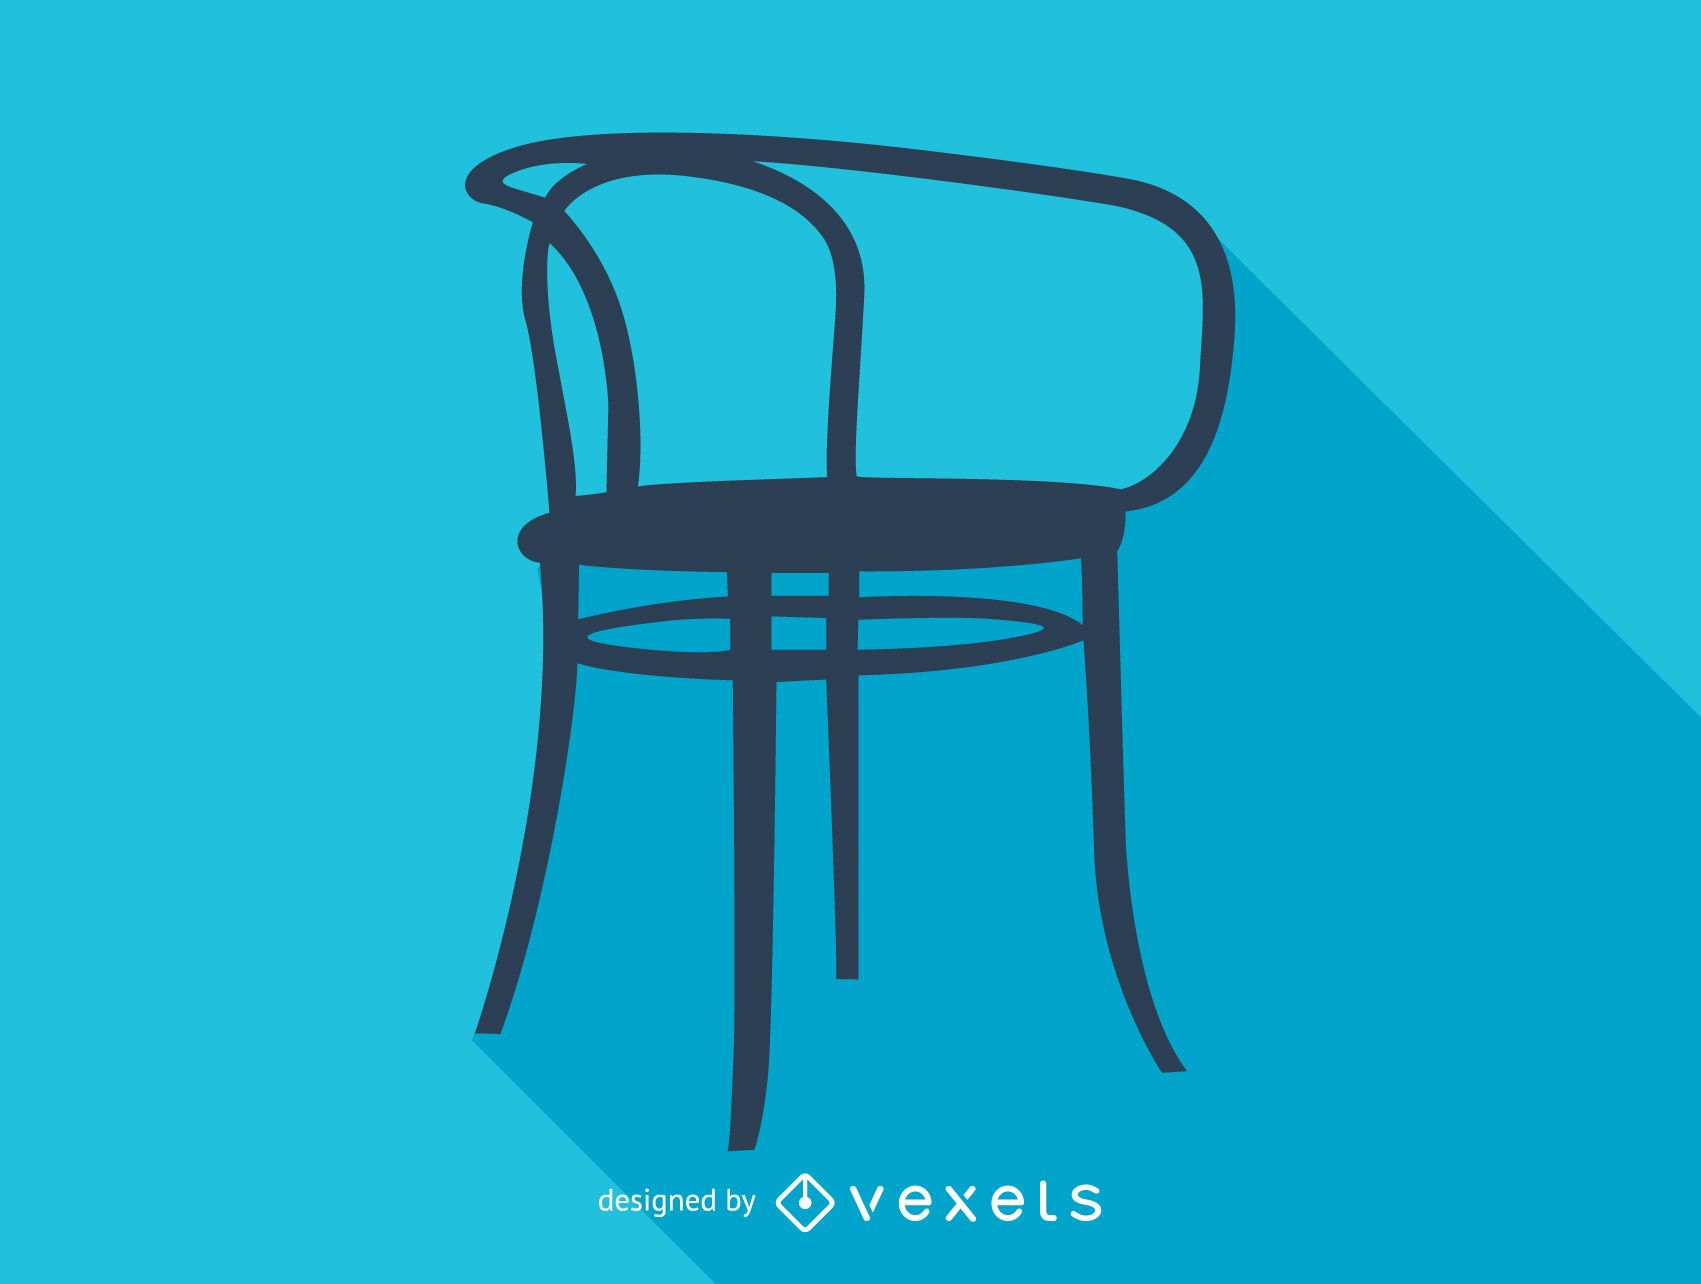 Otto Wagner Thonet chair silhouette